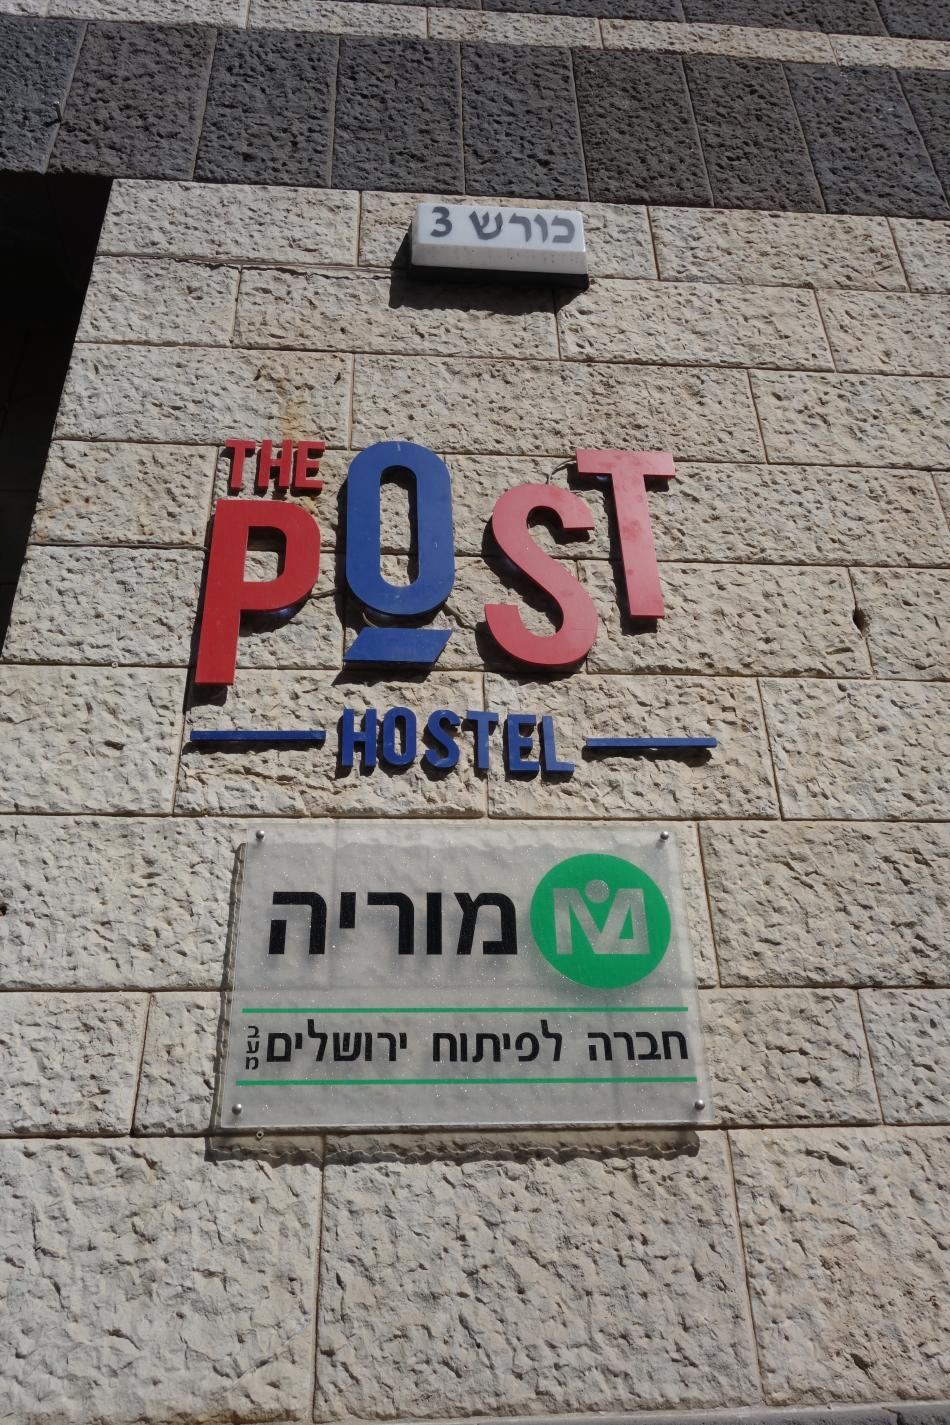 The Post Jerusalem